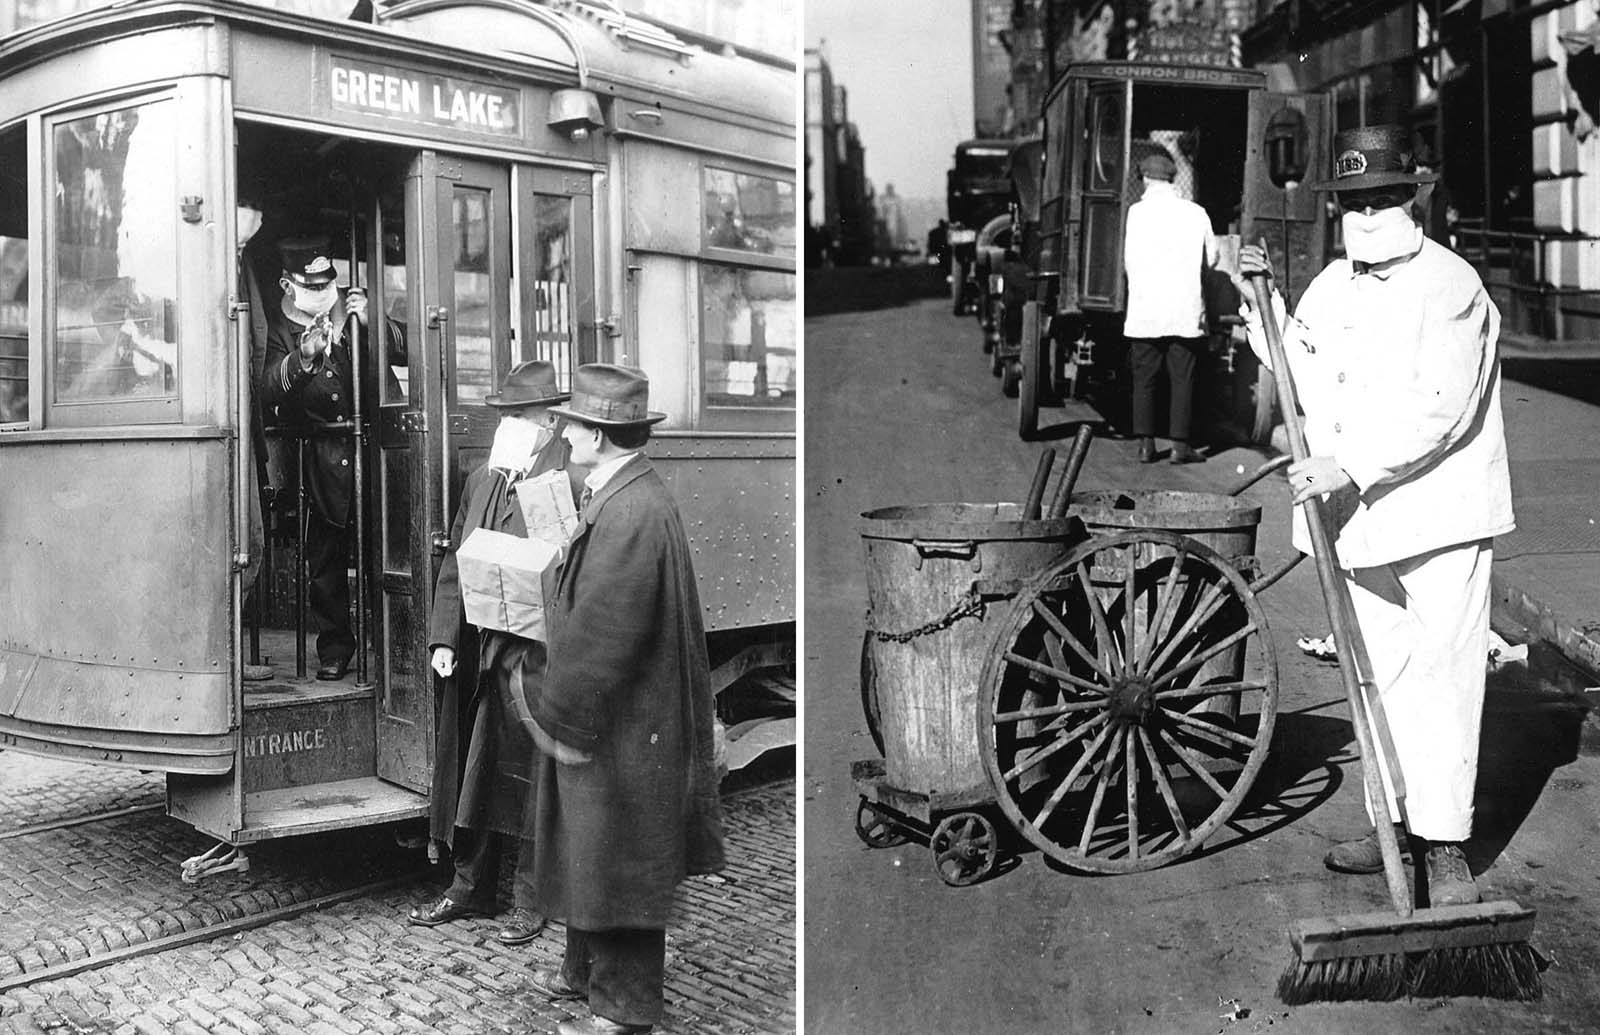 Left: A Seattle, Washington streetcar conductor refuses entry to a commuter who is not wearing a mask. Precautions taken in the city required passengers to wear masks on public transportation. Right: A New York city street sweeper wears a mask to help check the spread of influenza.